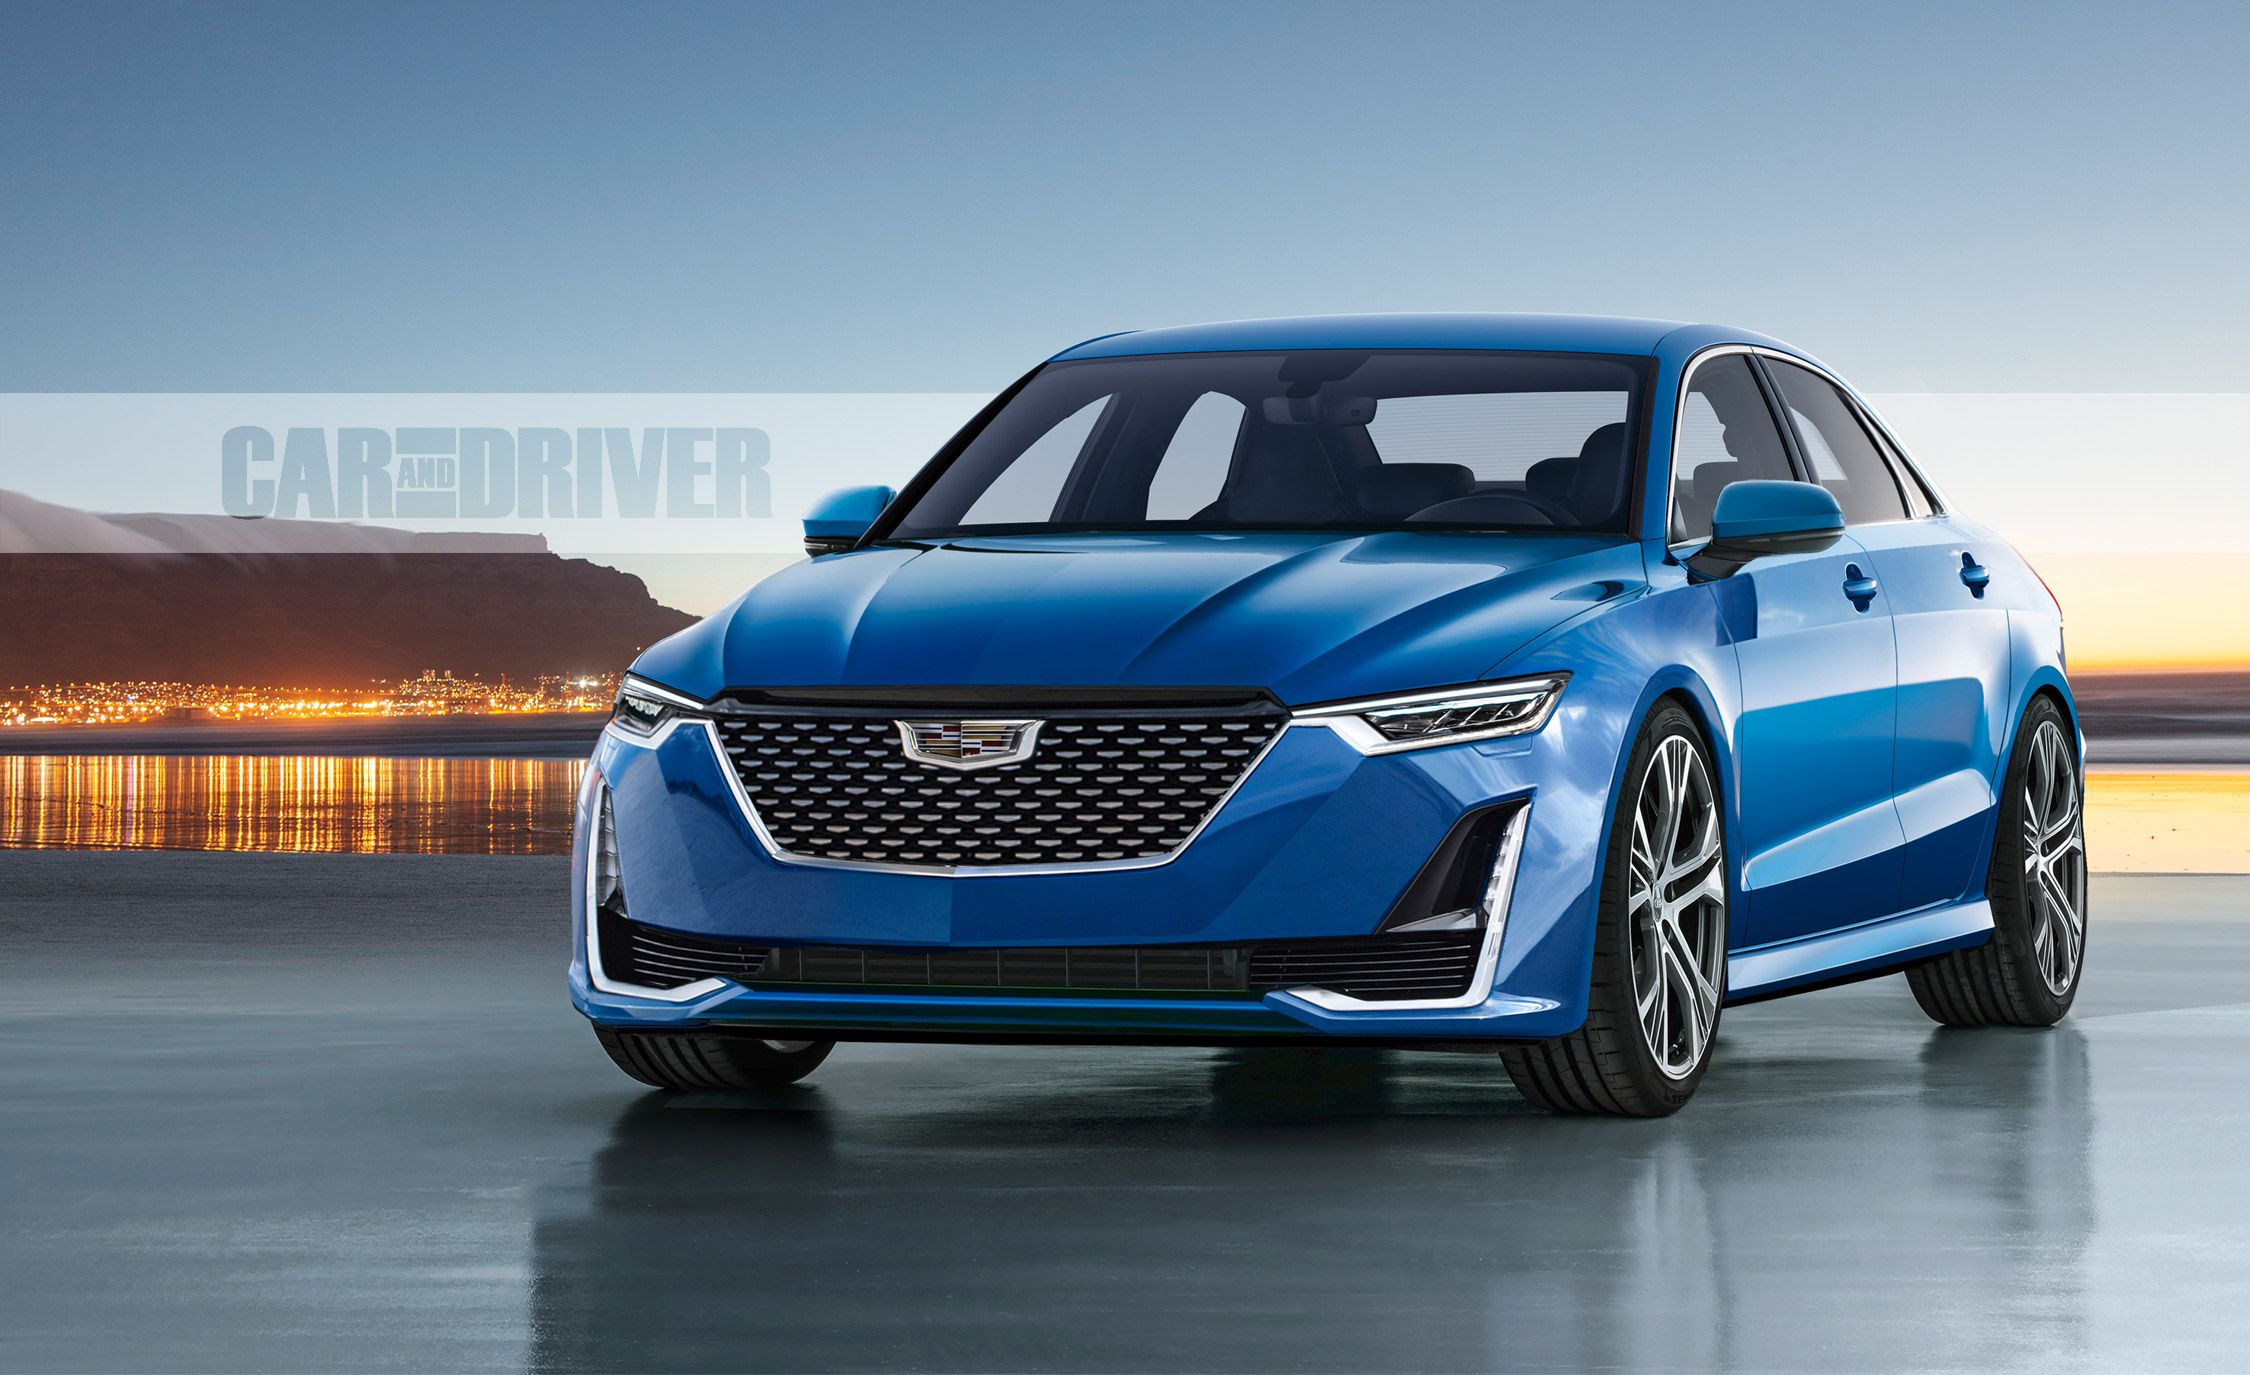 38 Best 2020 Cadillac CTS V Exterior and Interior